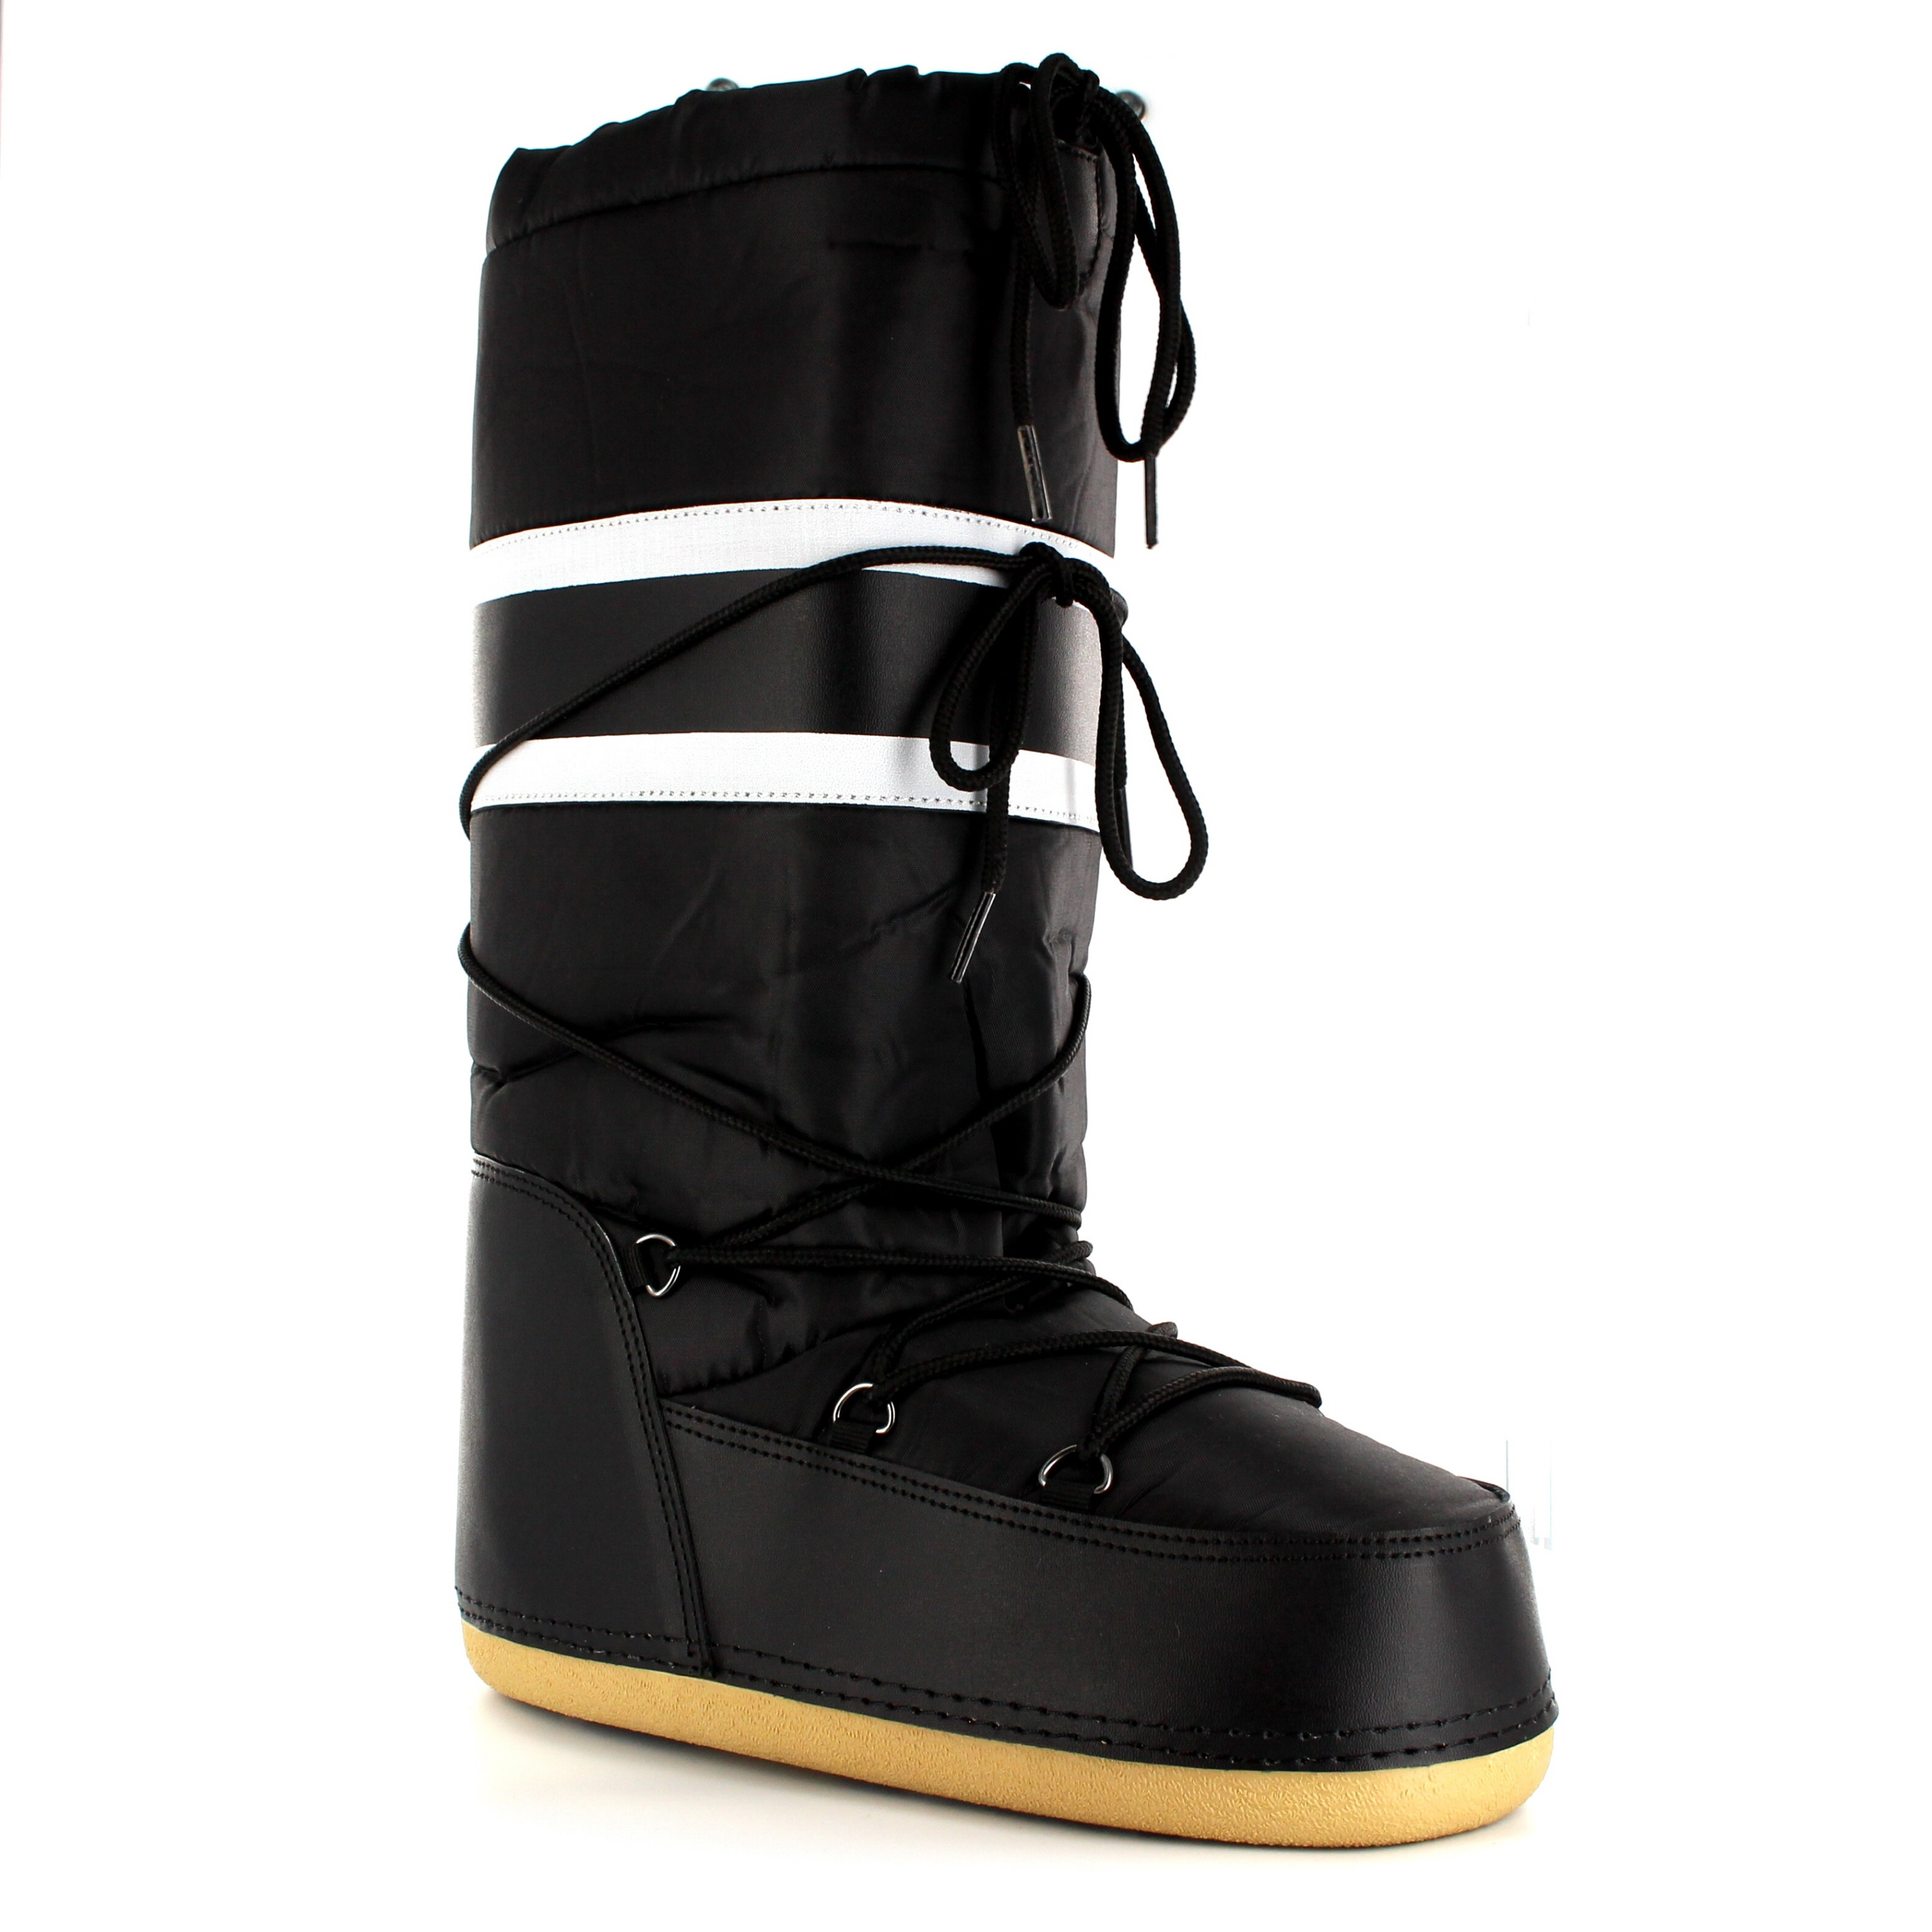 Popular Details About WOMENS TALL FULLY FUR LINED WINTER SNOW SHOE BOOTS 38